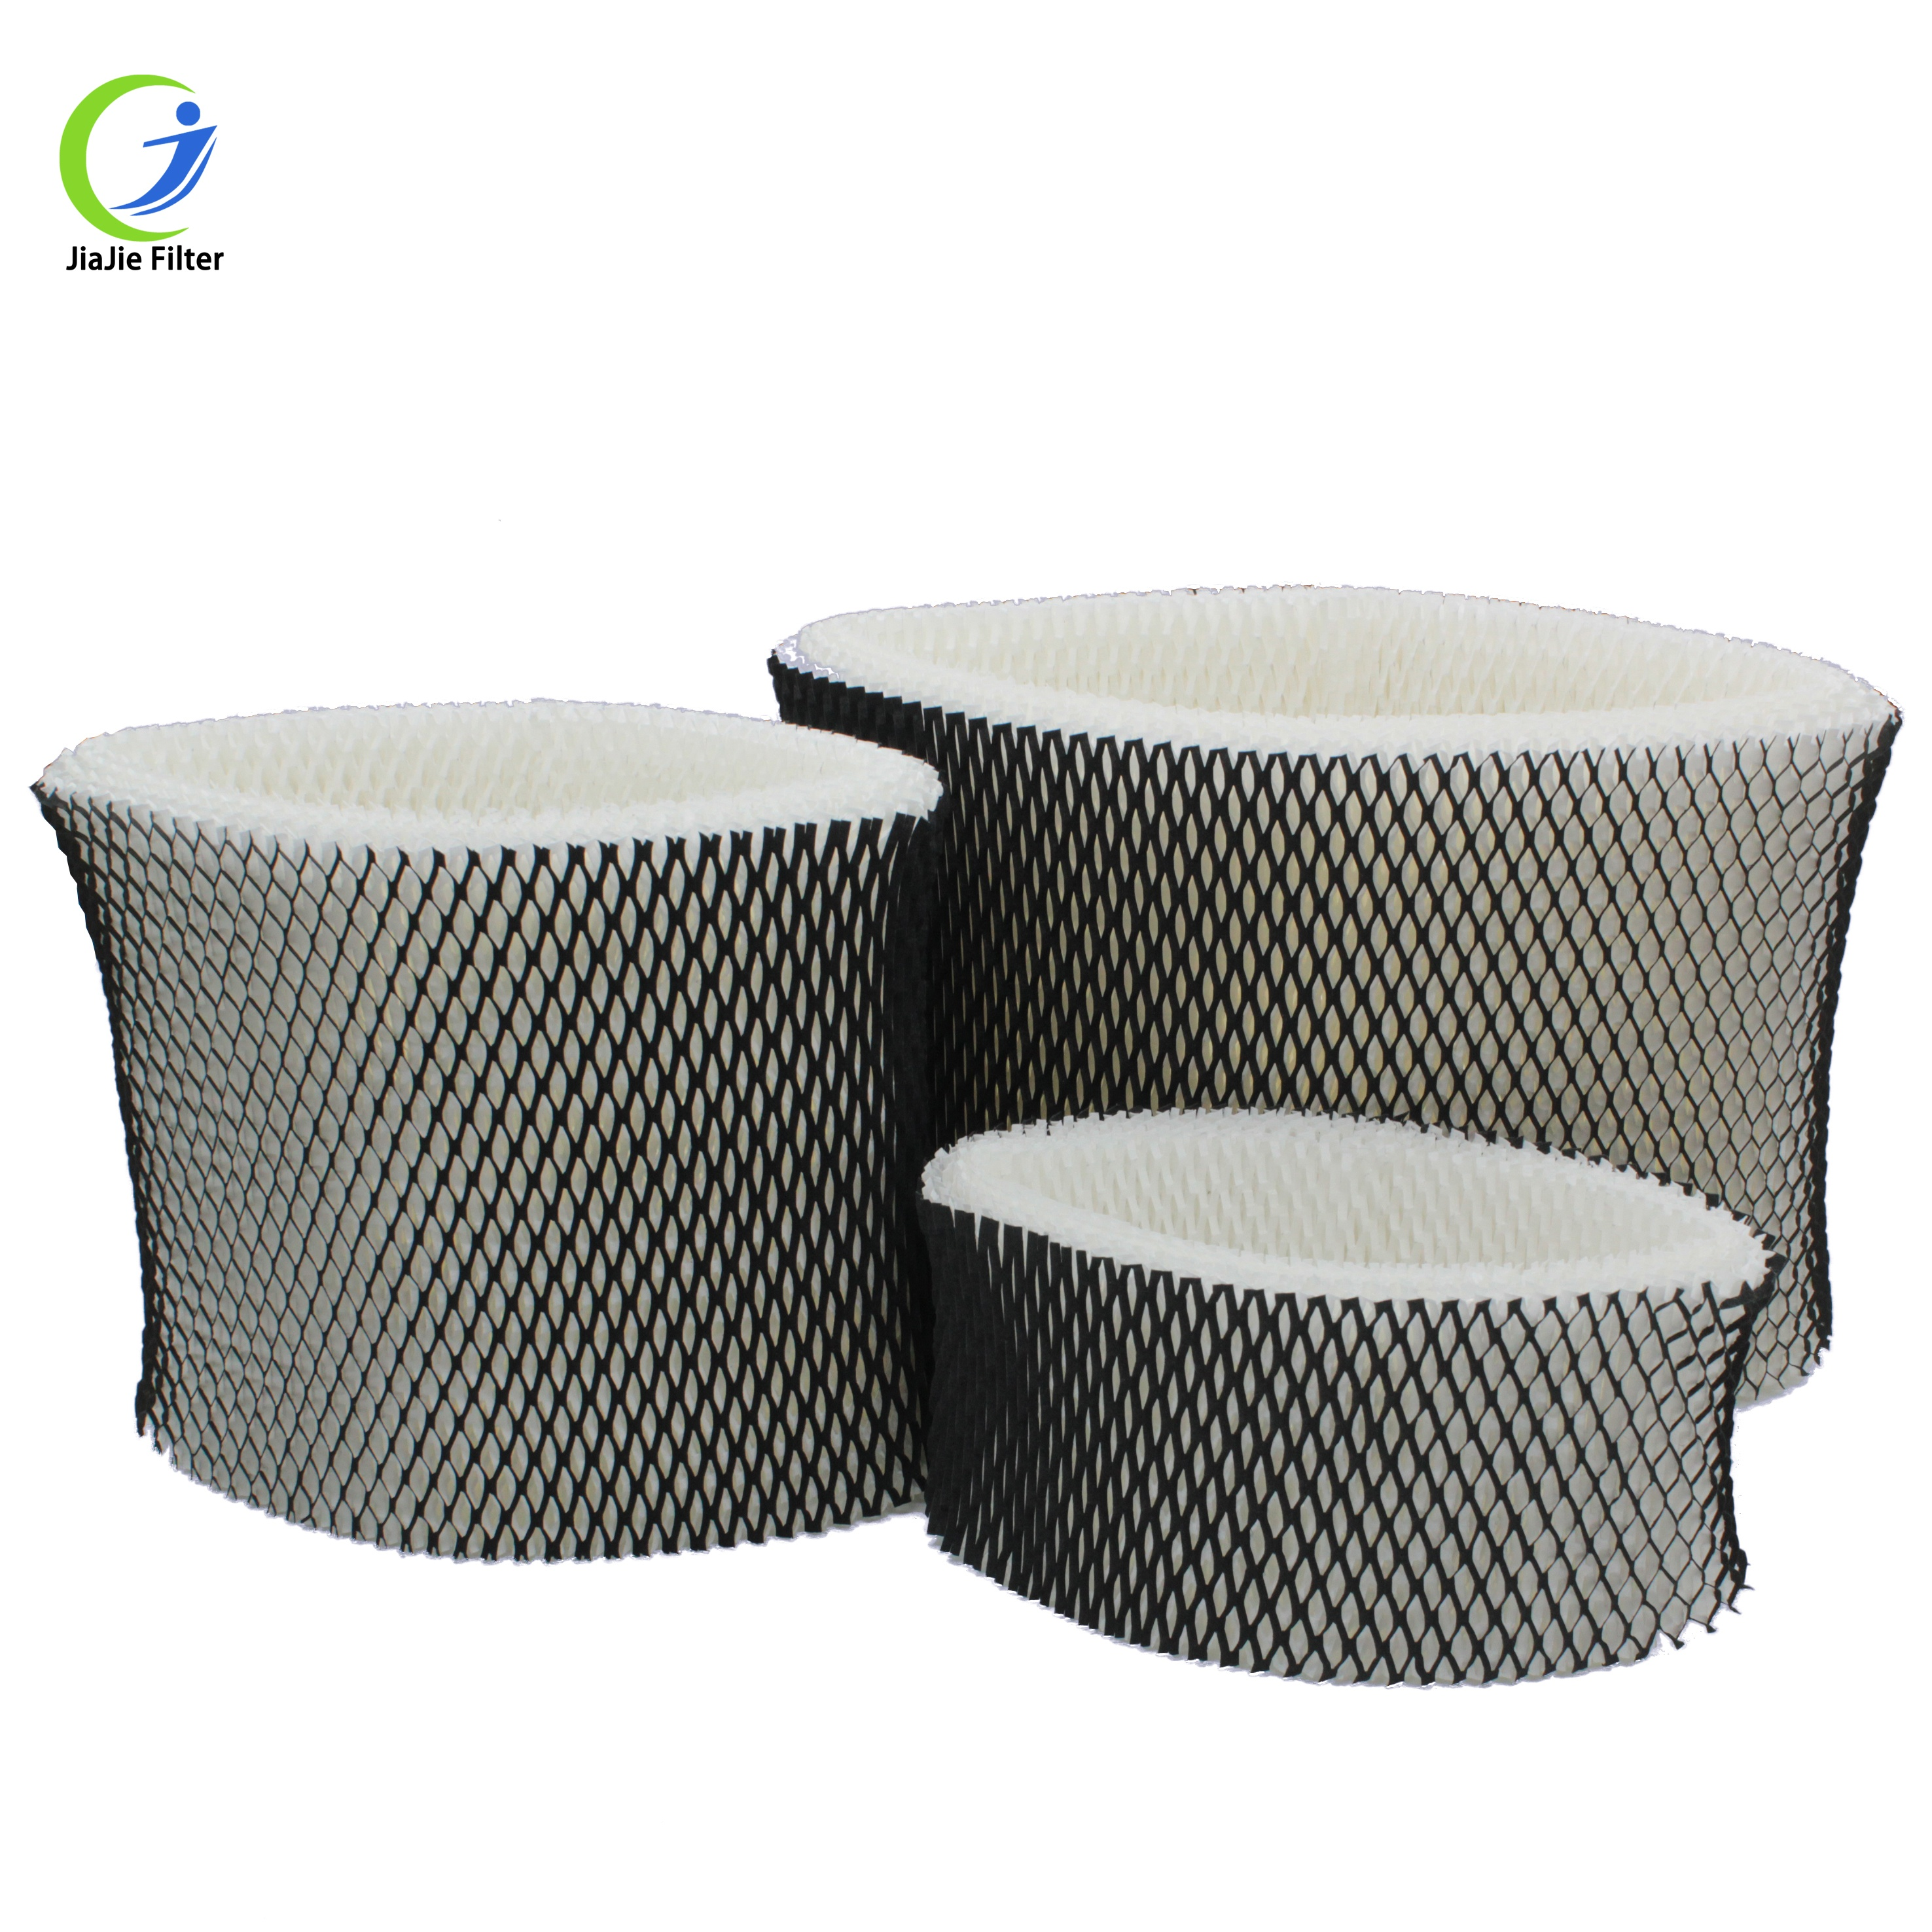 home diffuser cool humidifier water wick filter material Replacement HOLMES HWF62CS Compatible Sunbeam HWF62 HWF75CS cartridge